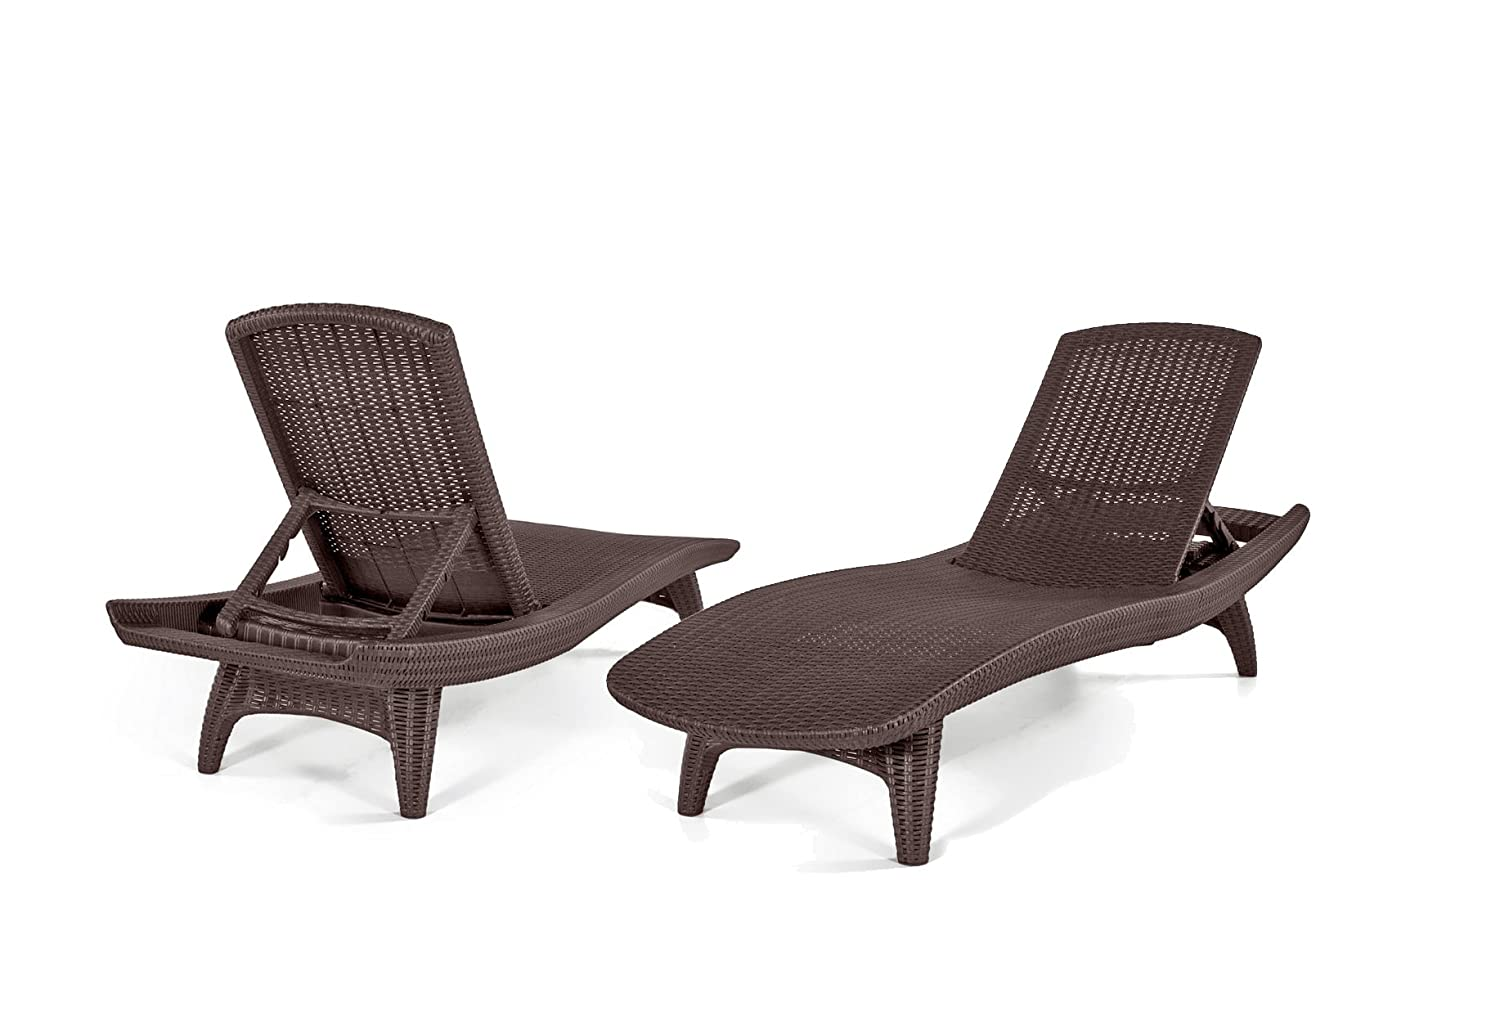 Keter Pacific Sun Chaise Lounger Set with Rio Table